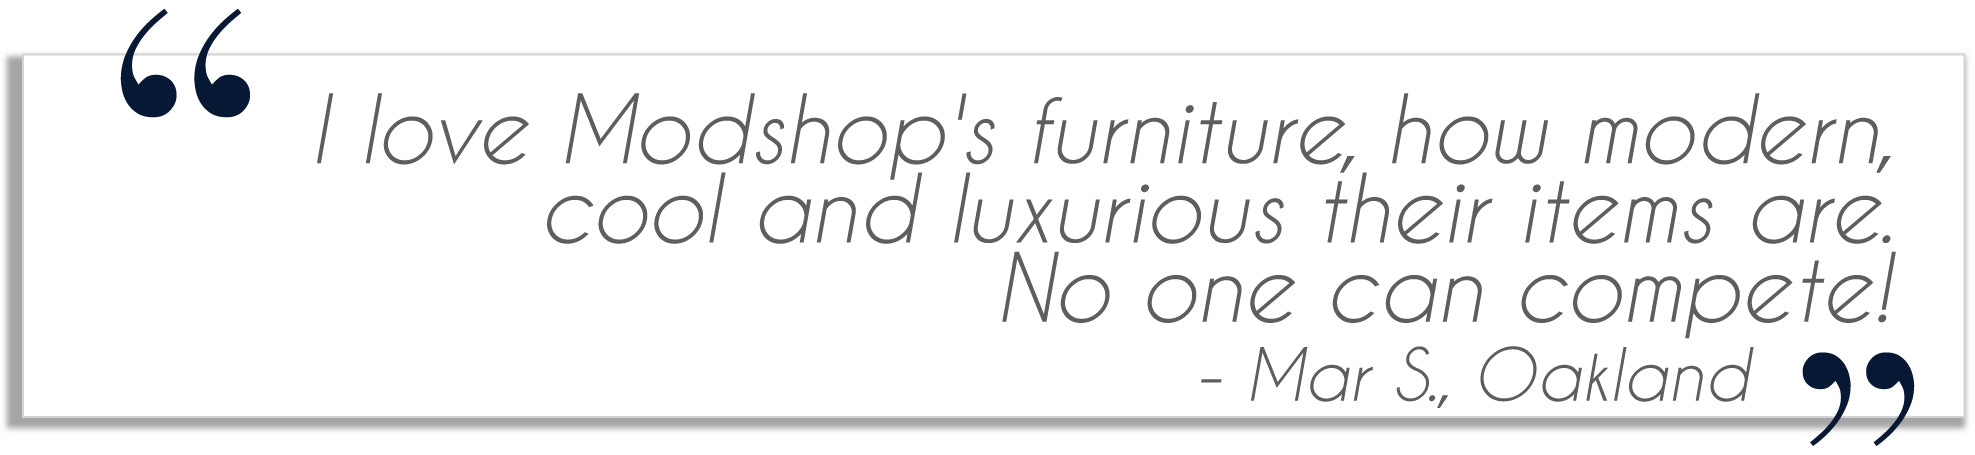 testimonial from Mar S. in Oakland: I love Modshops furniture, how modern, cool and luxurious their items are. No one can compete!